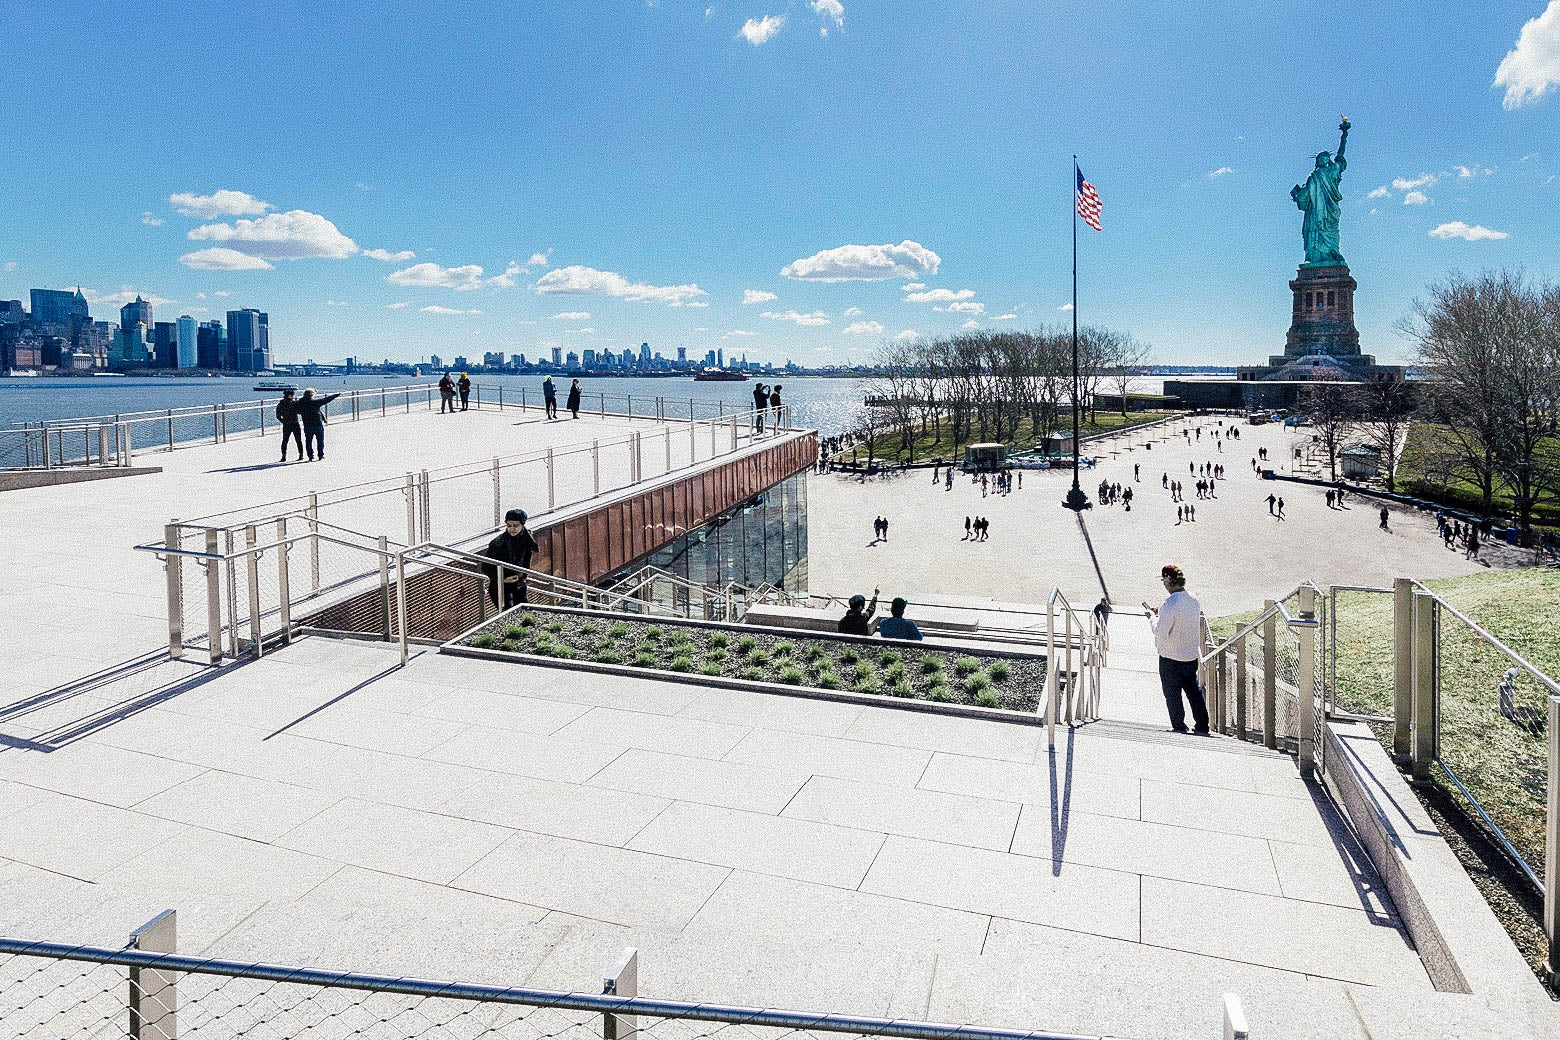 Statue of Liberty Museum pavilion, with the statue and the New York skyline in the background.